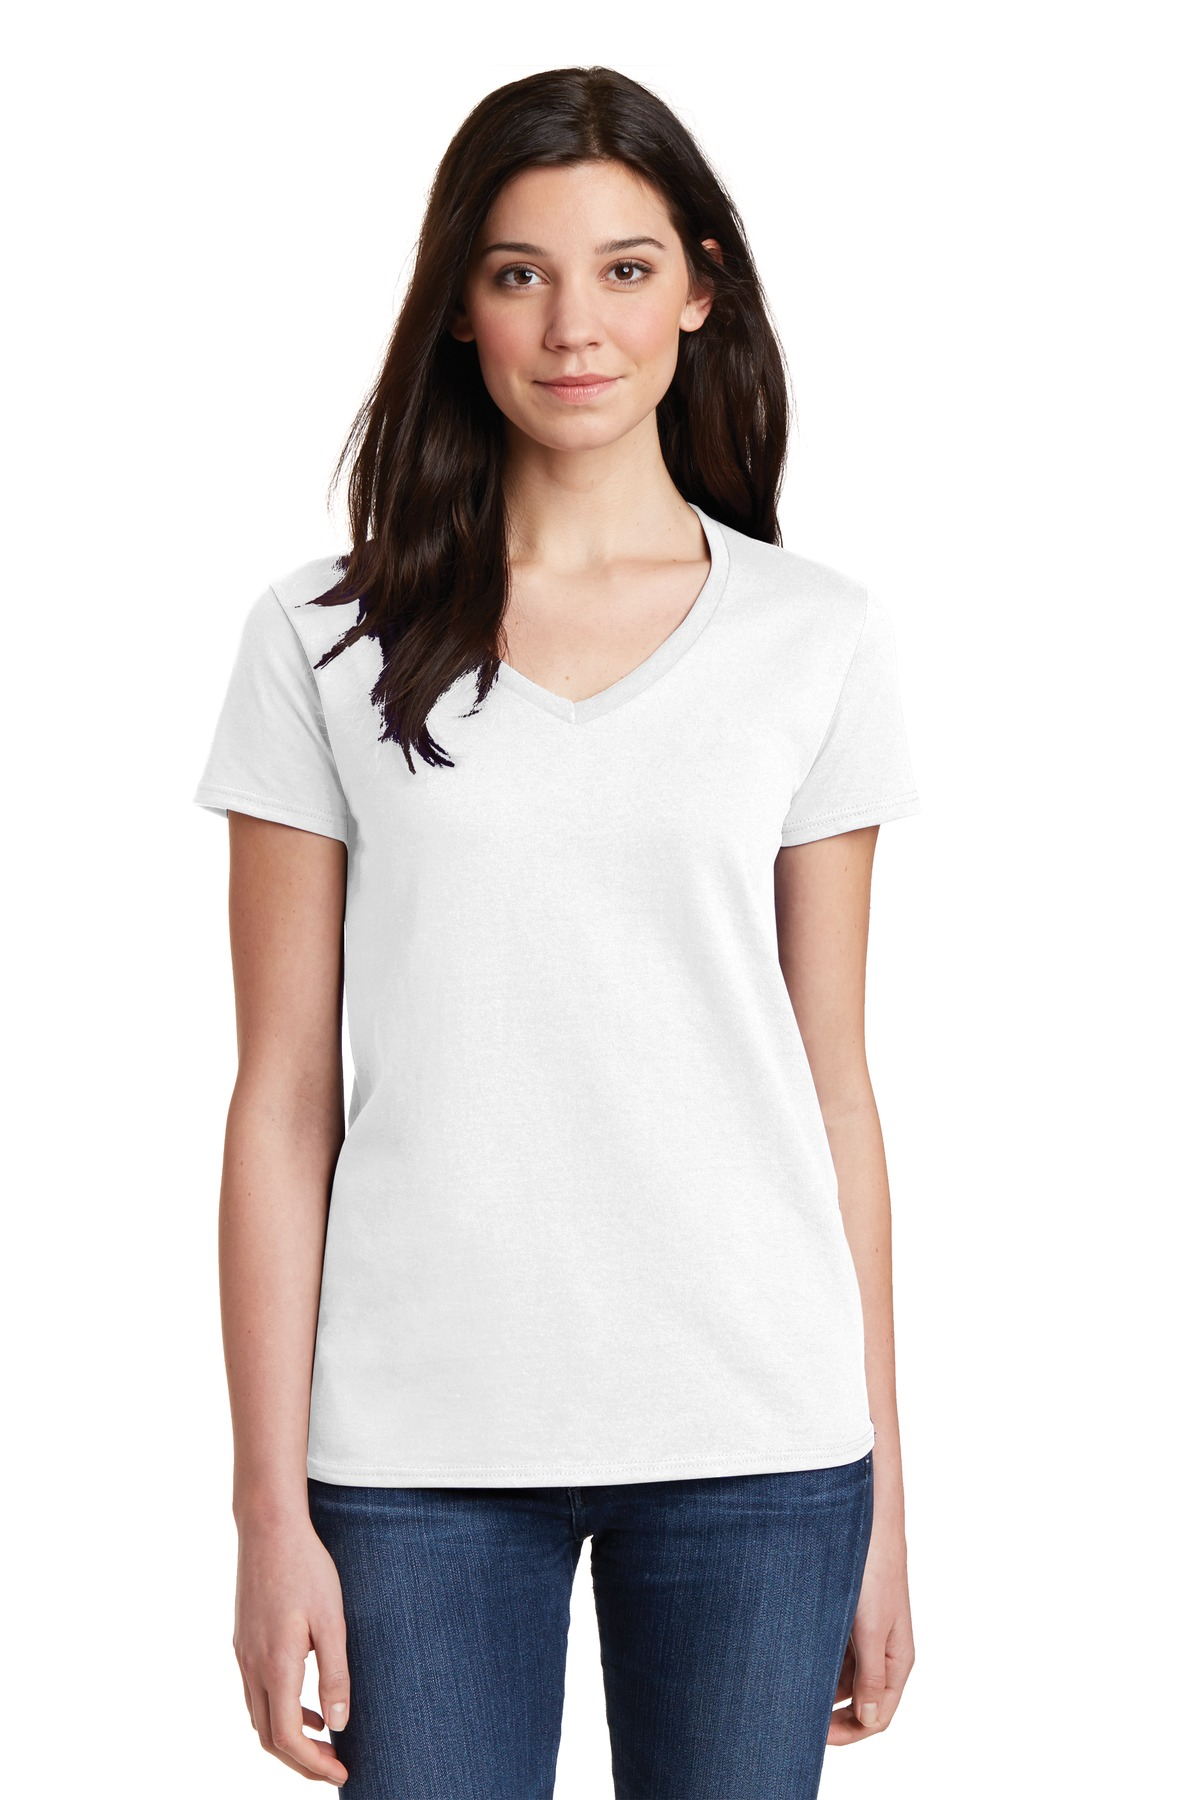 Gildan  5V00L - Ladies Heavy Cotton 100% Cotton V-Neck ...